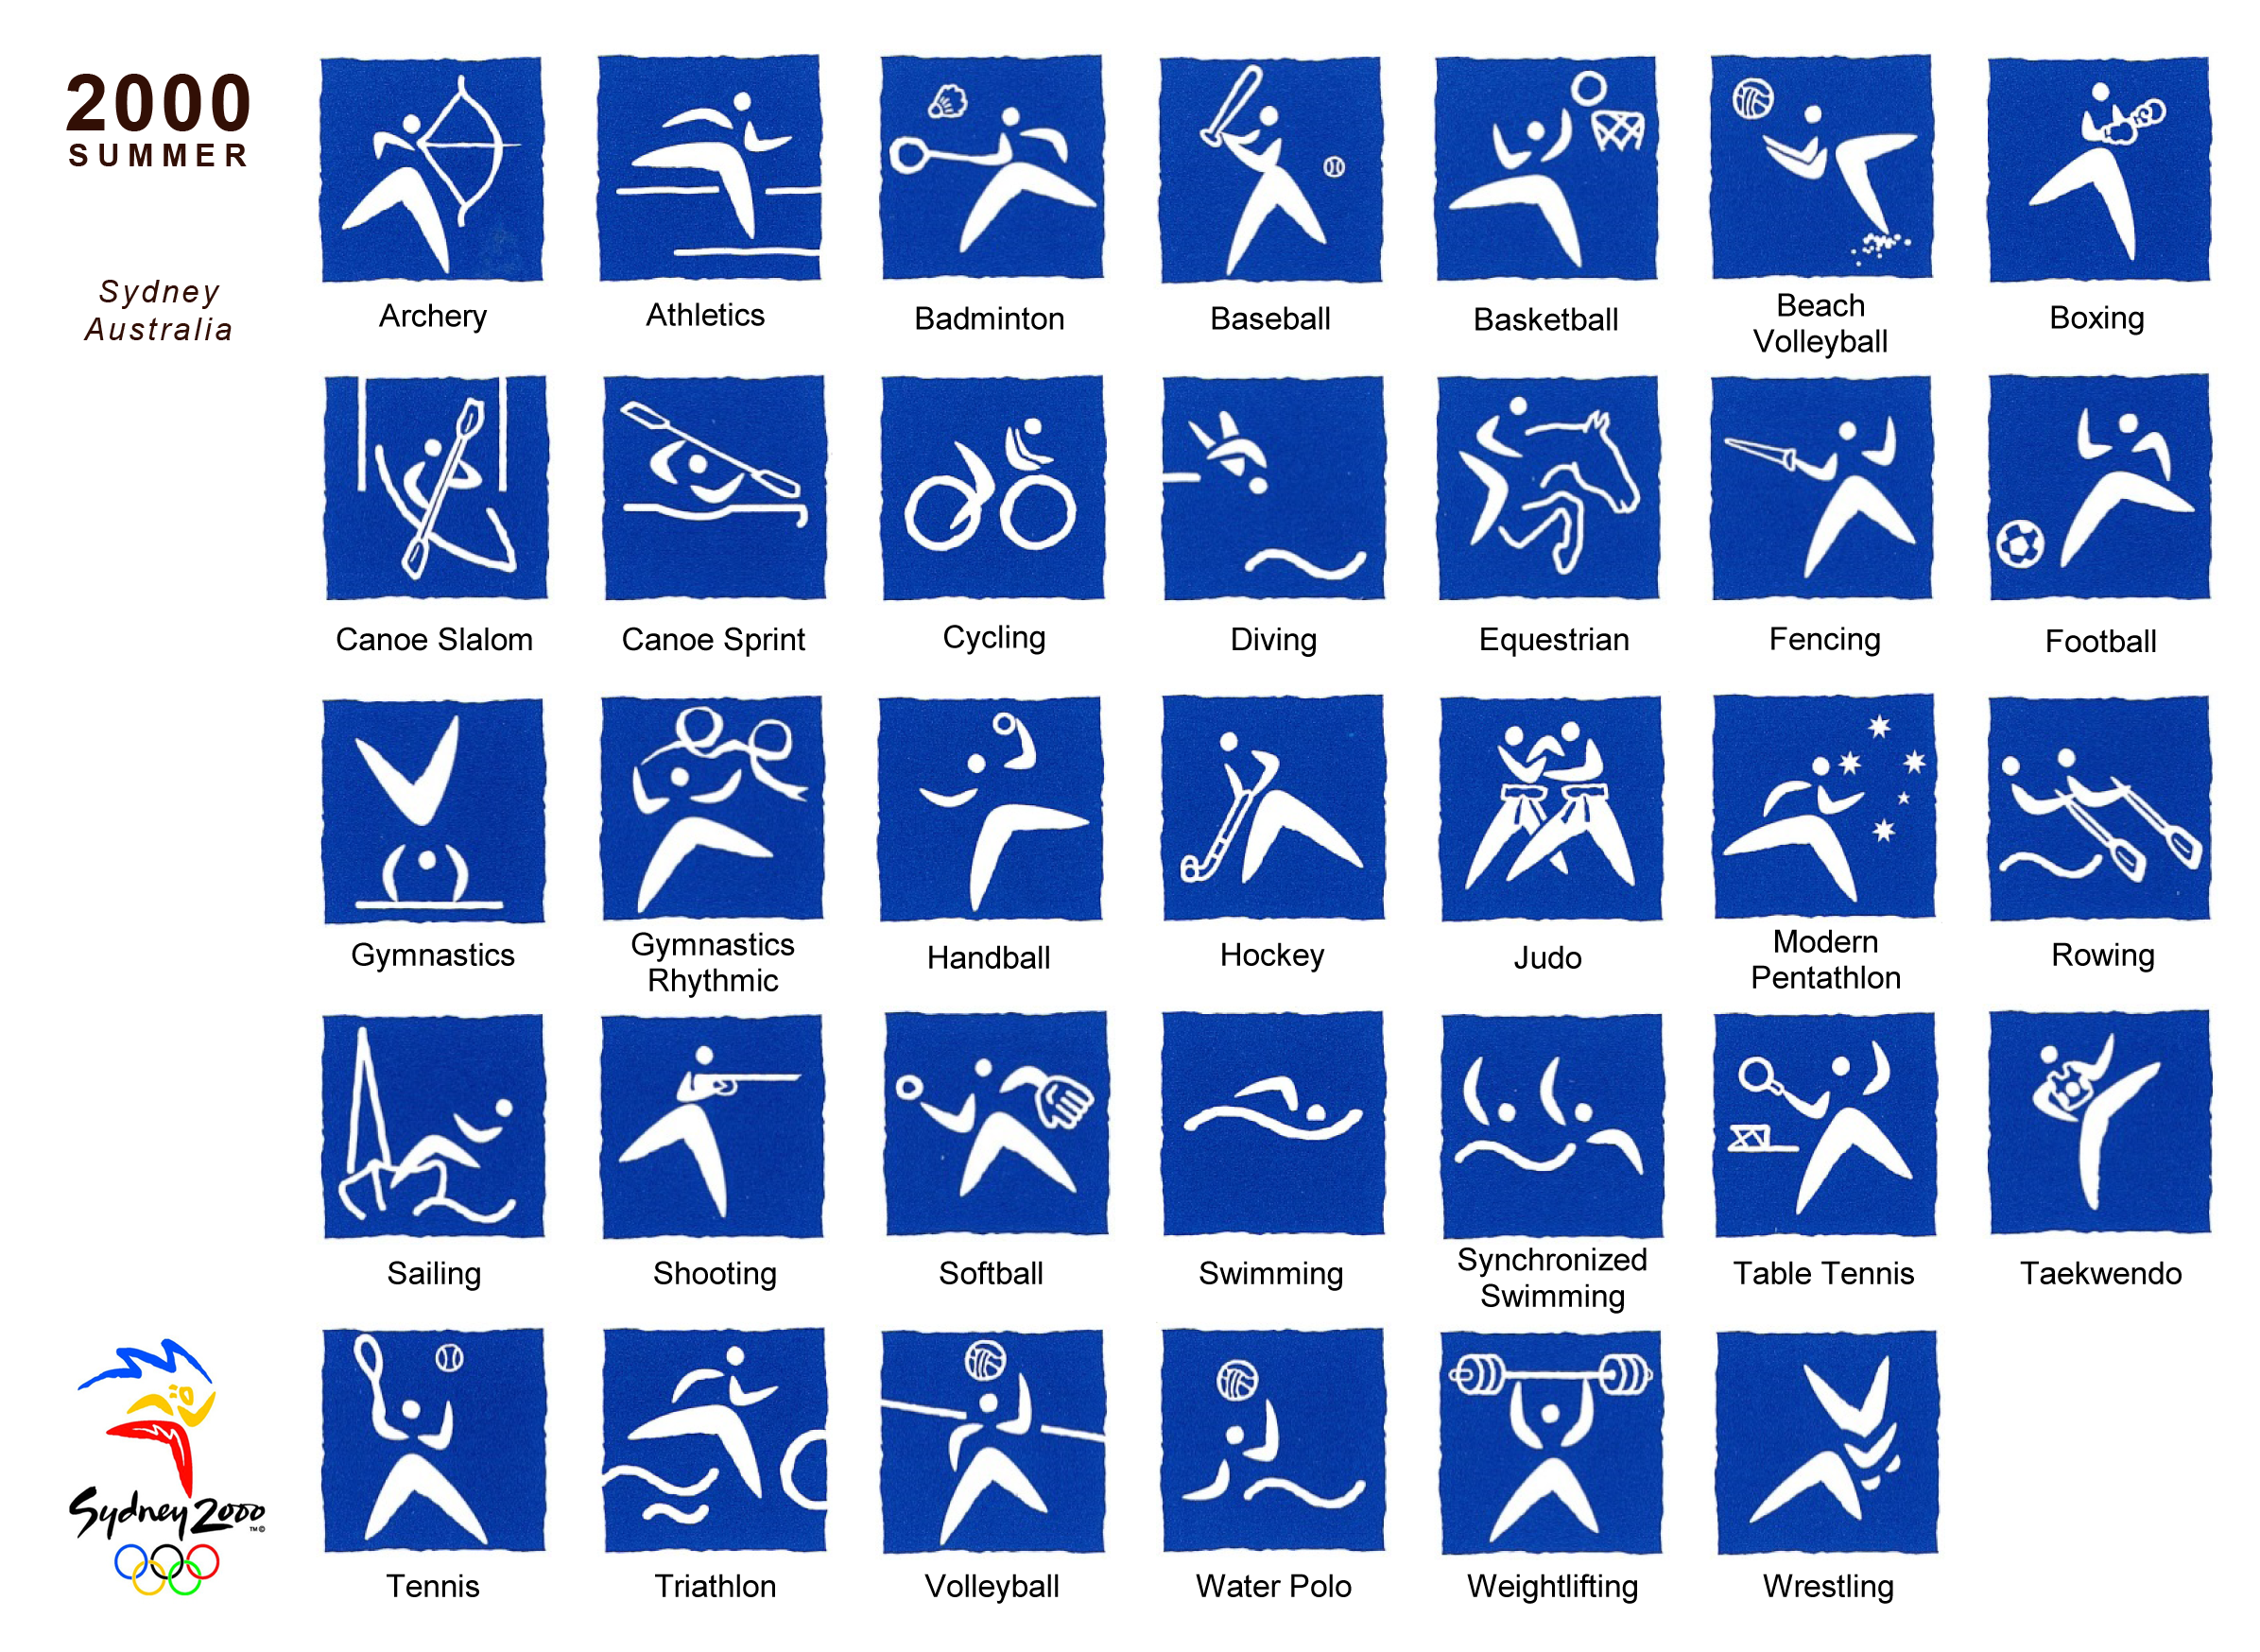 The Sports Pictograms Of The Olympic Summer Games From Tokyo 1964 To Rio 2016 Pictogram Pentathlon Canoe Slalom